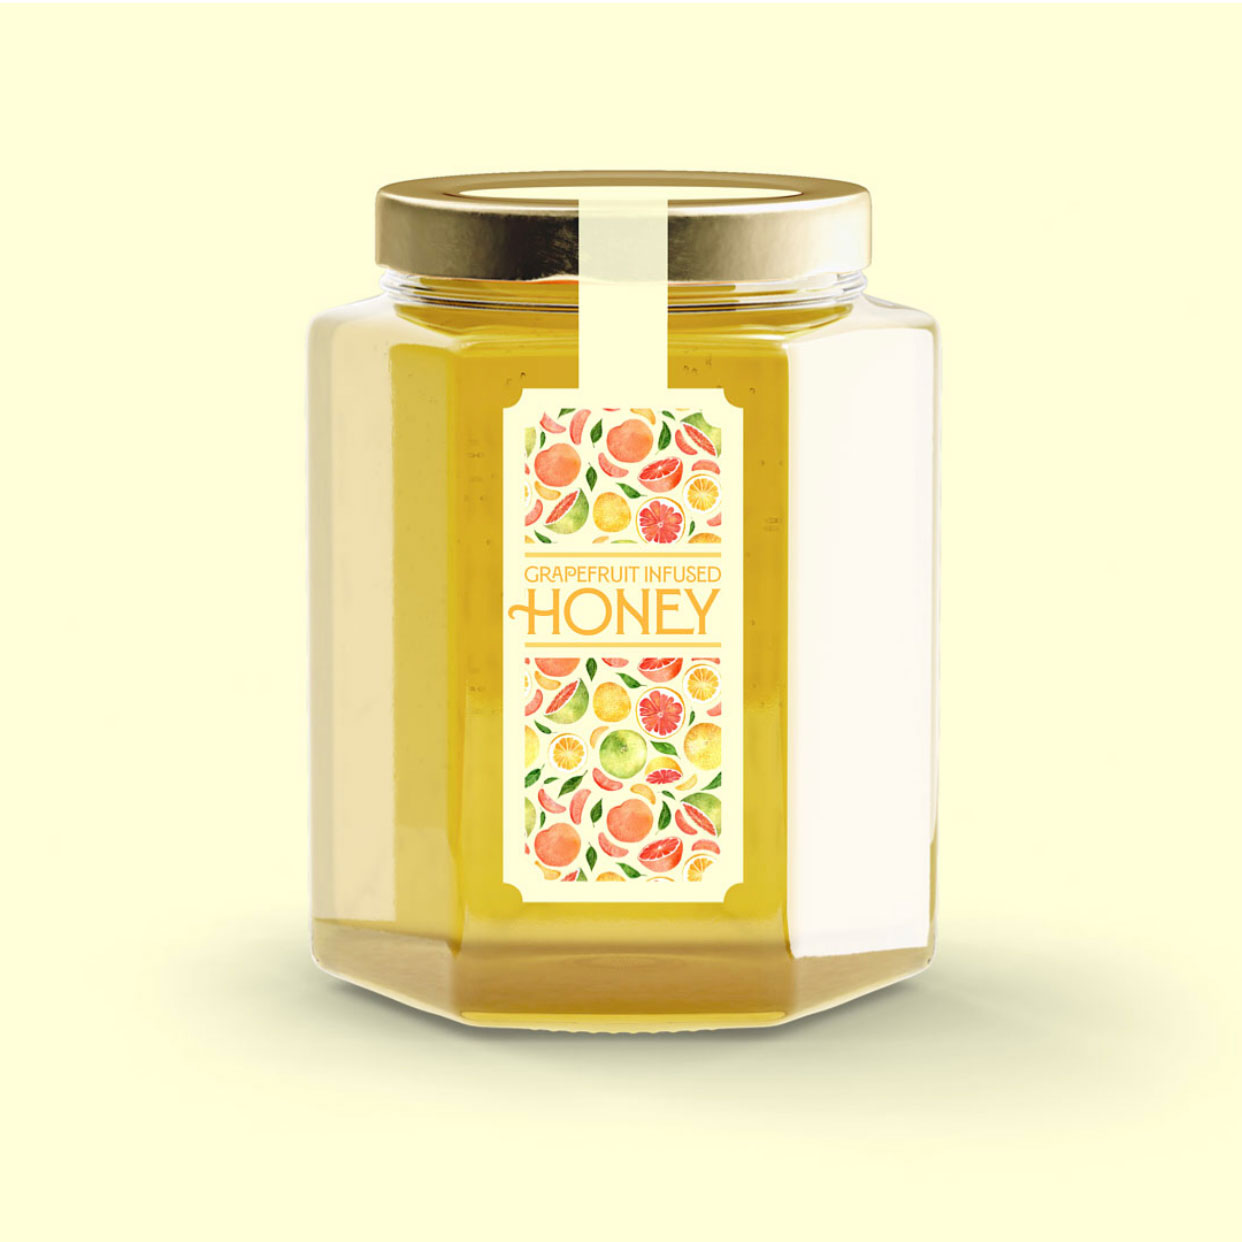 Grapefruit Infused Honey Label